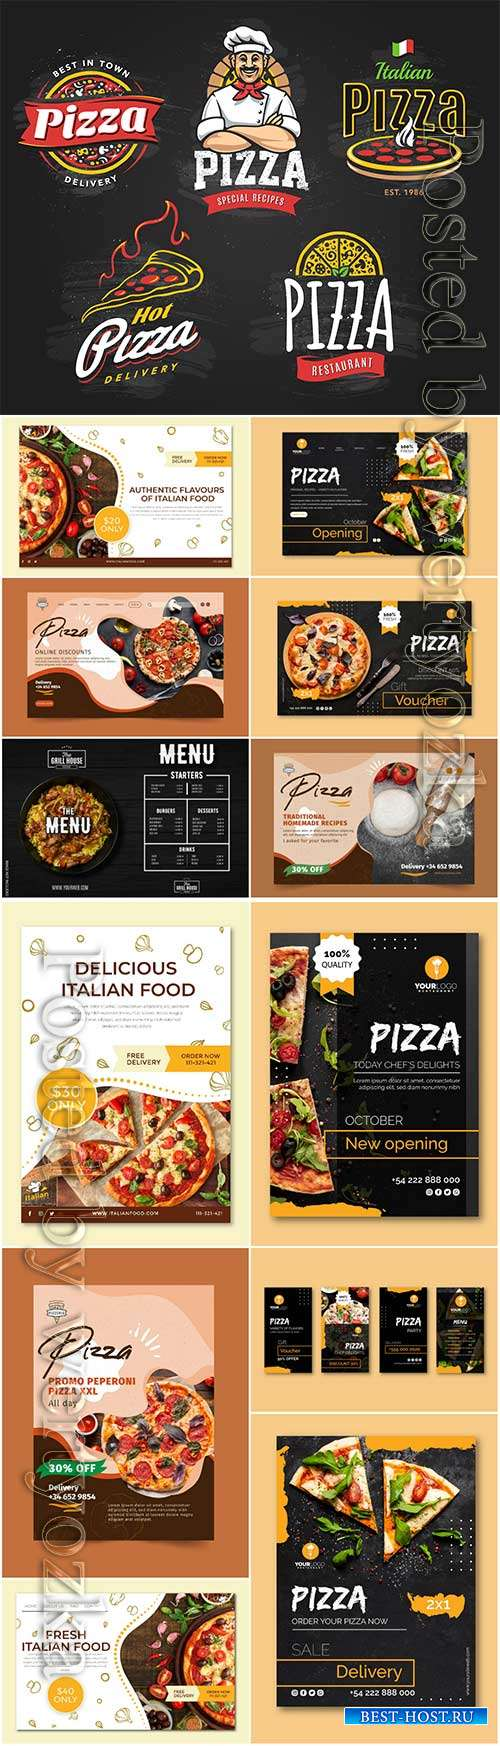 Menu pizza restaurant banner templates